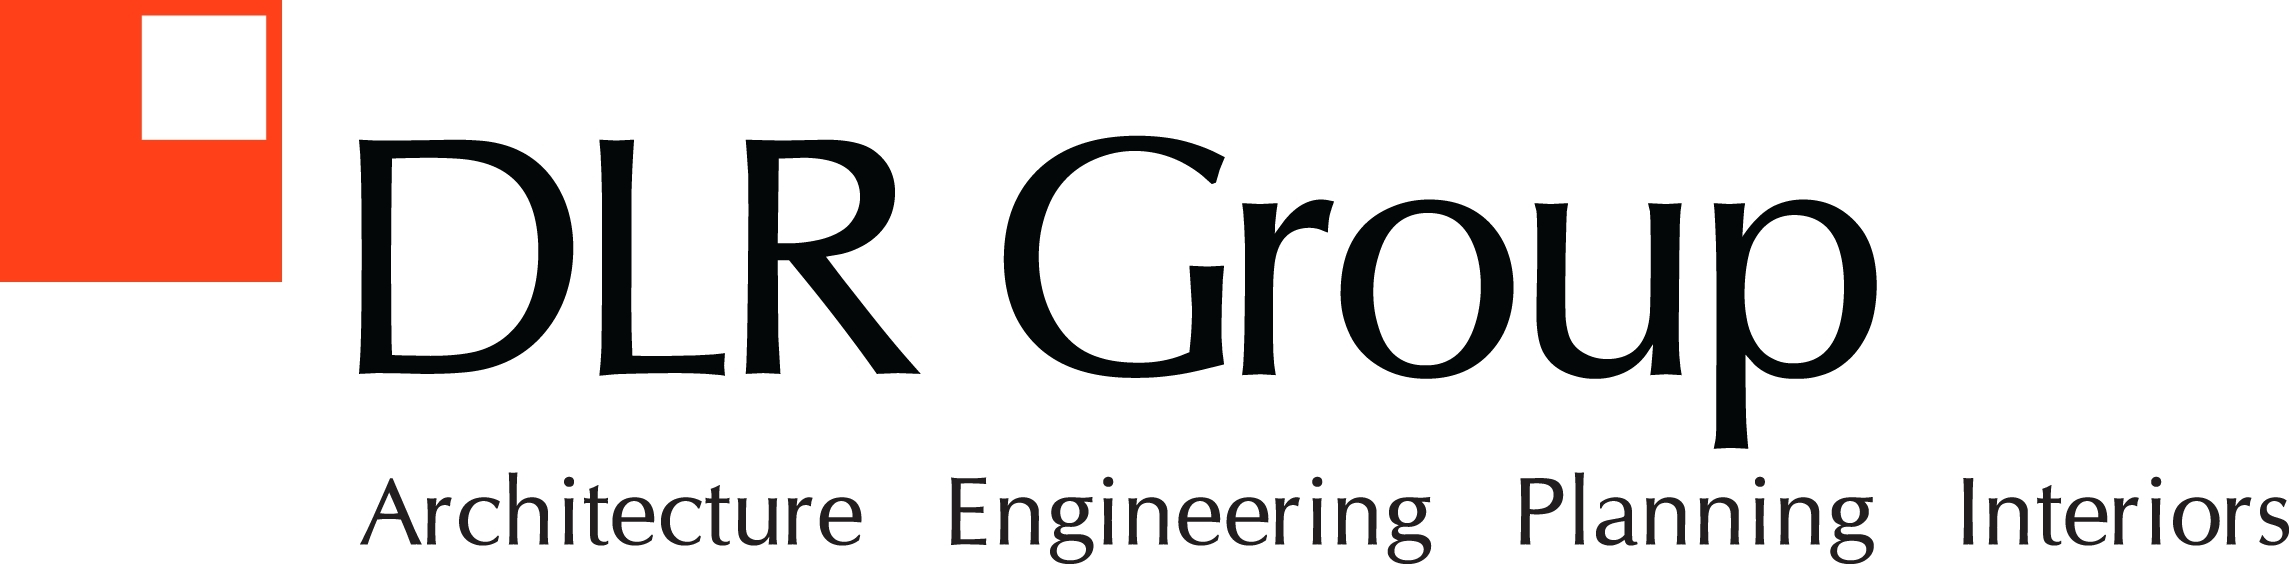 DLR_Group_Logo.jpg